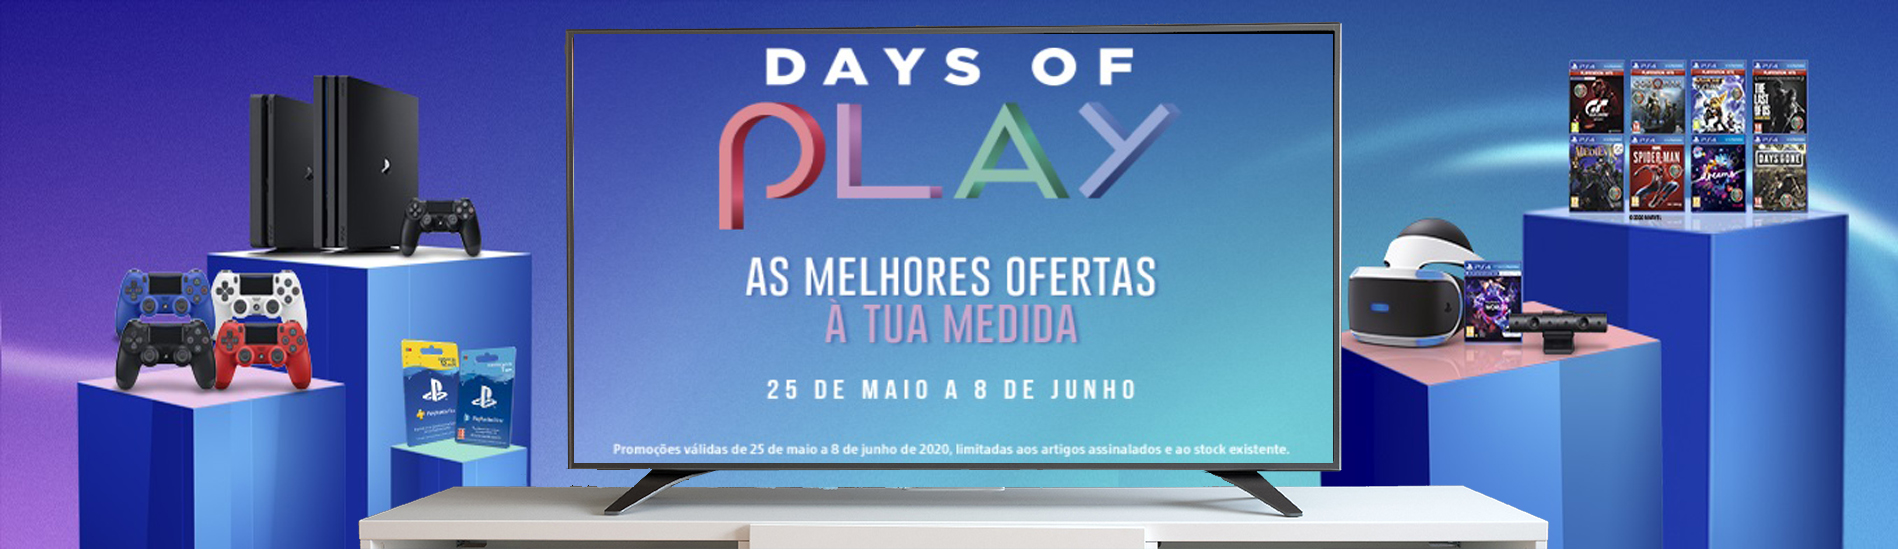 DAYS-OF-PLAY-2020